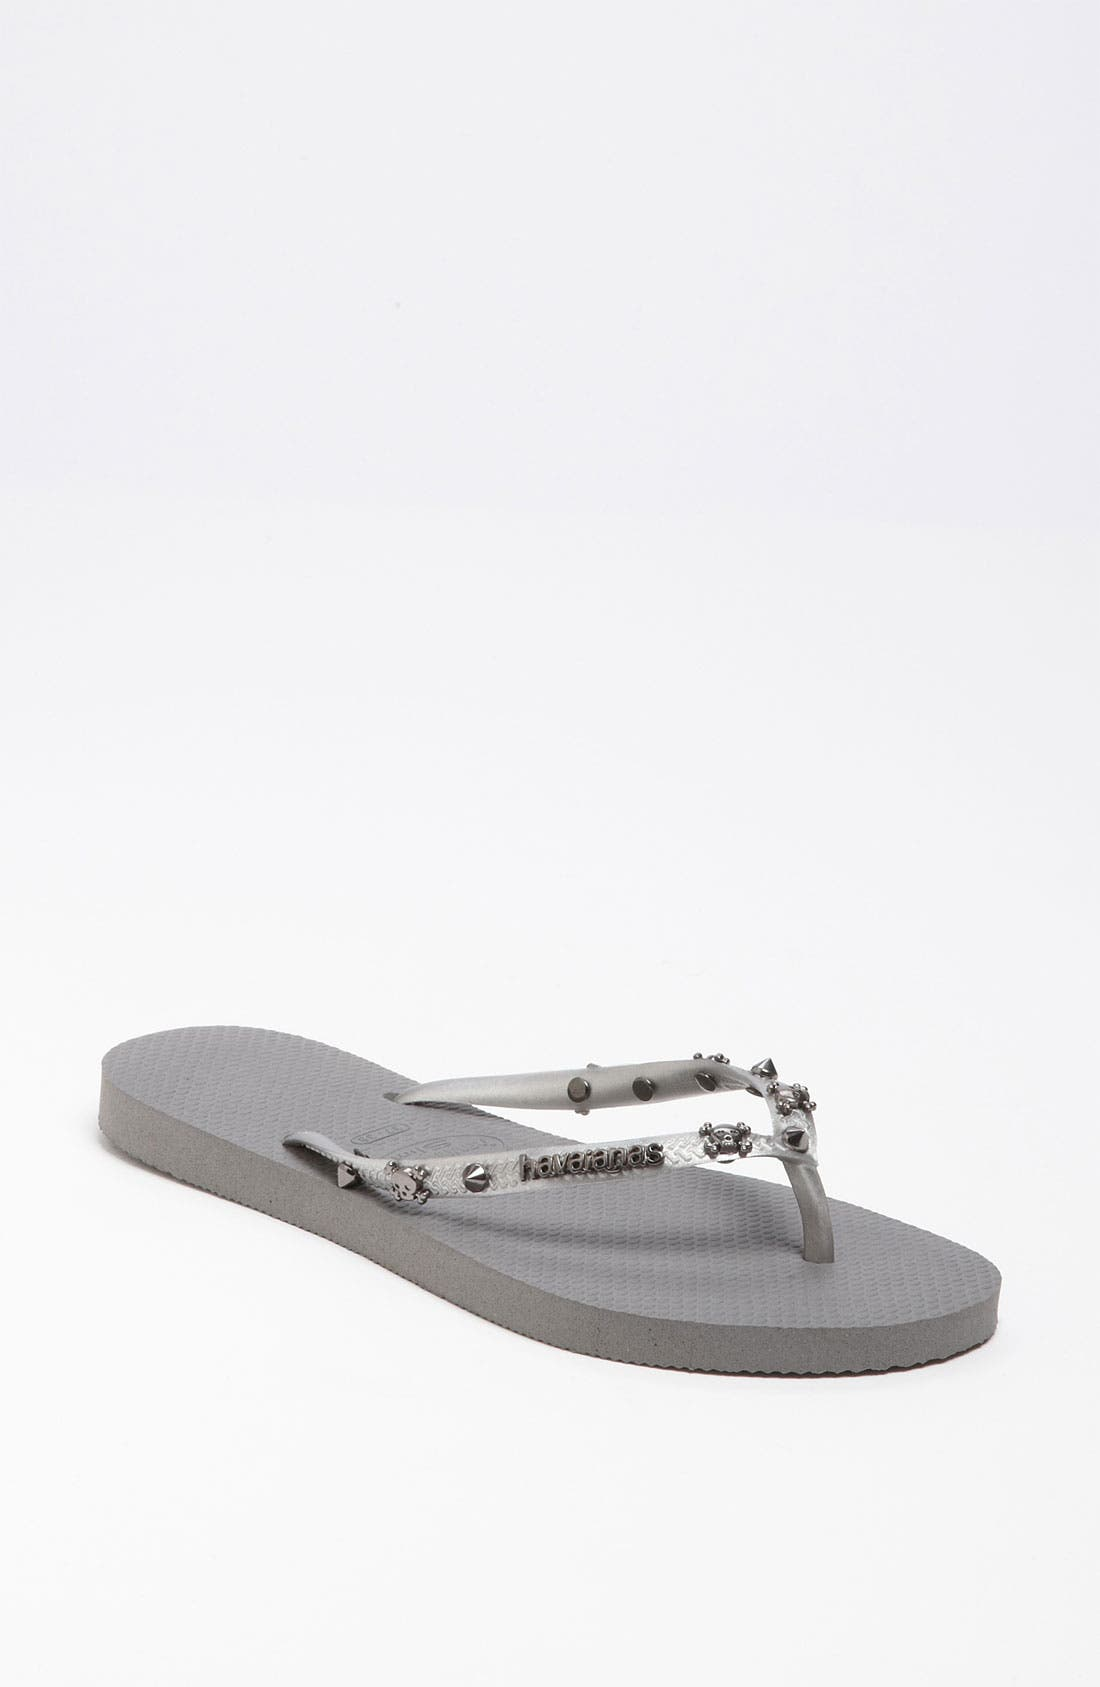 Alternate Image 1 Selected - Havaianas 'Slim Hardware' Flip Flop (Women)